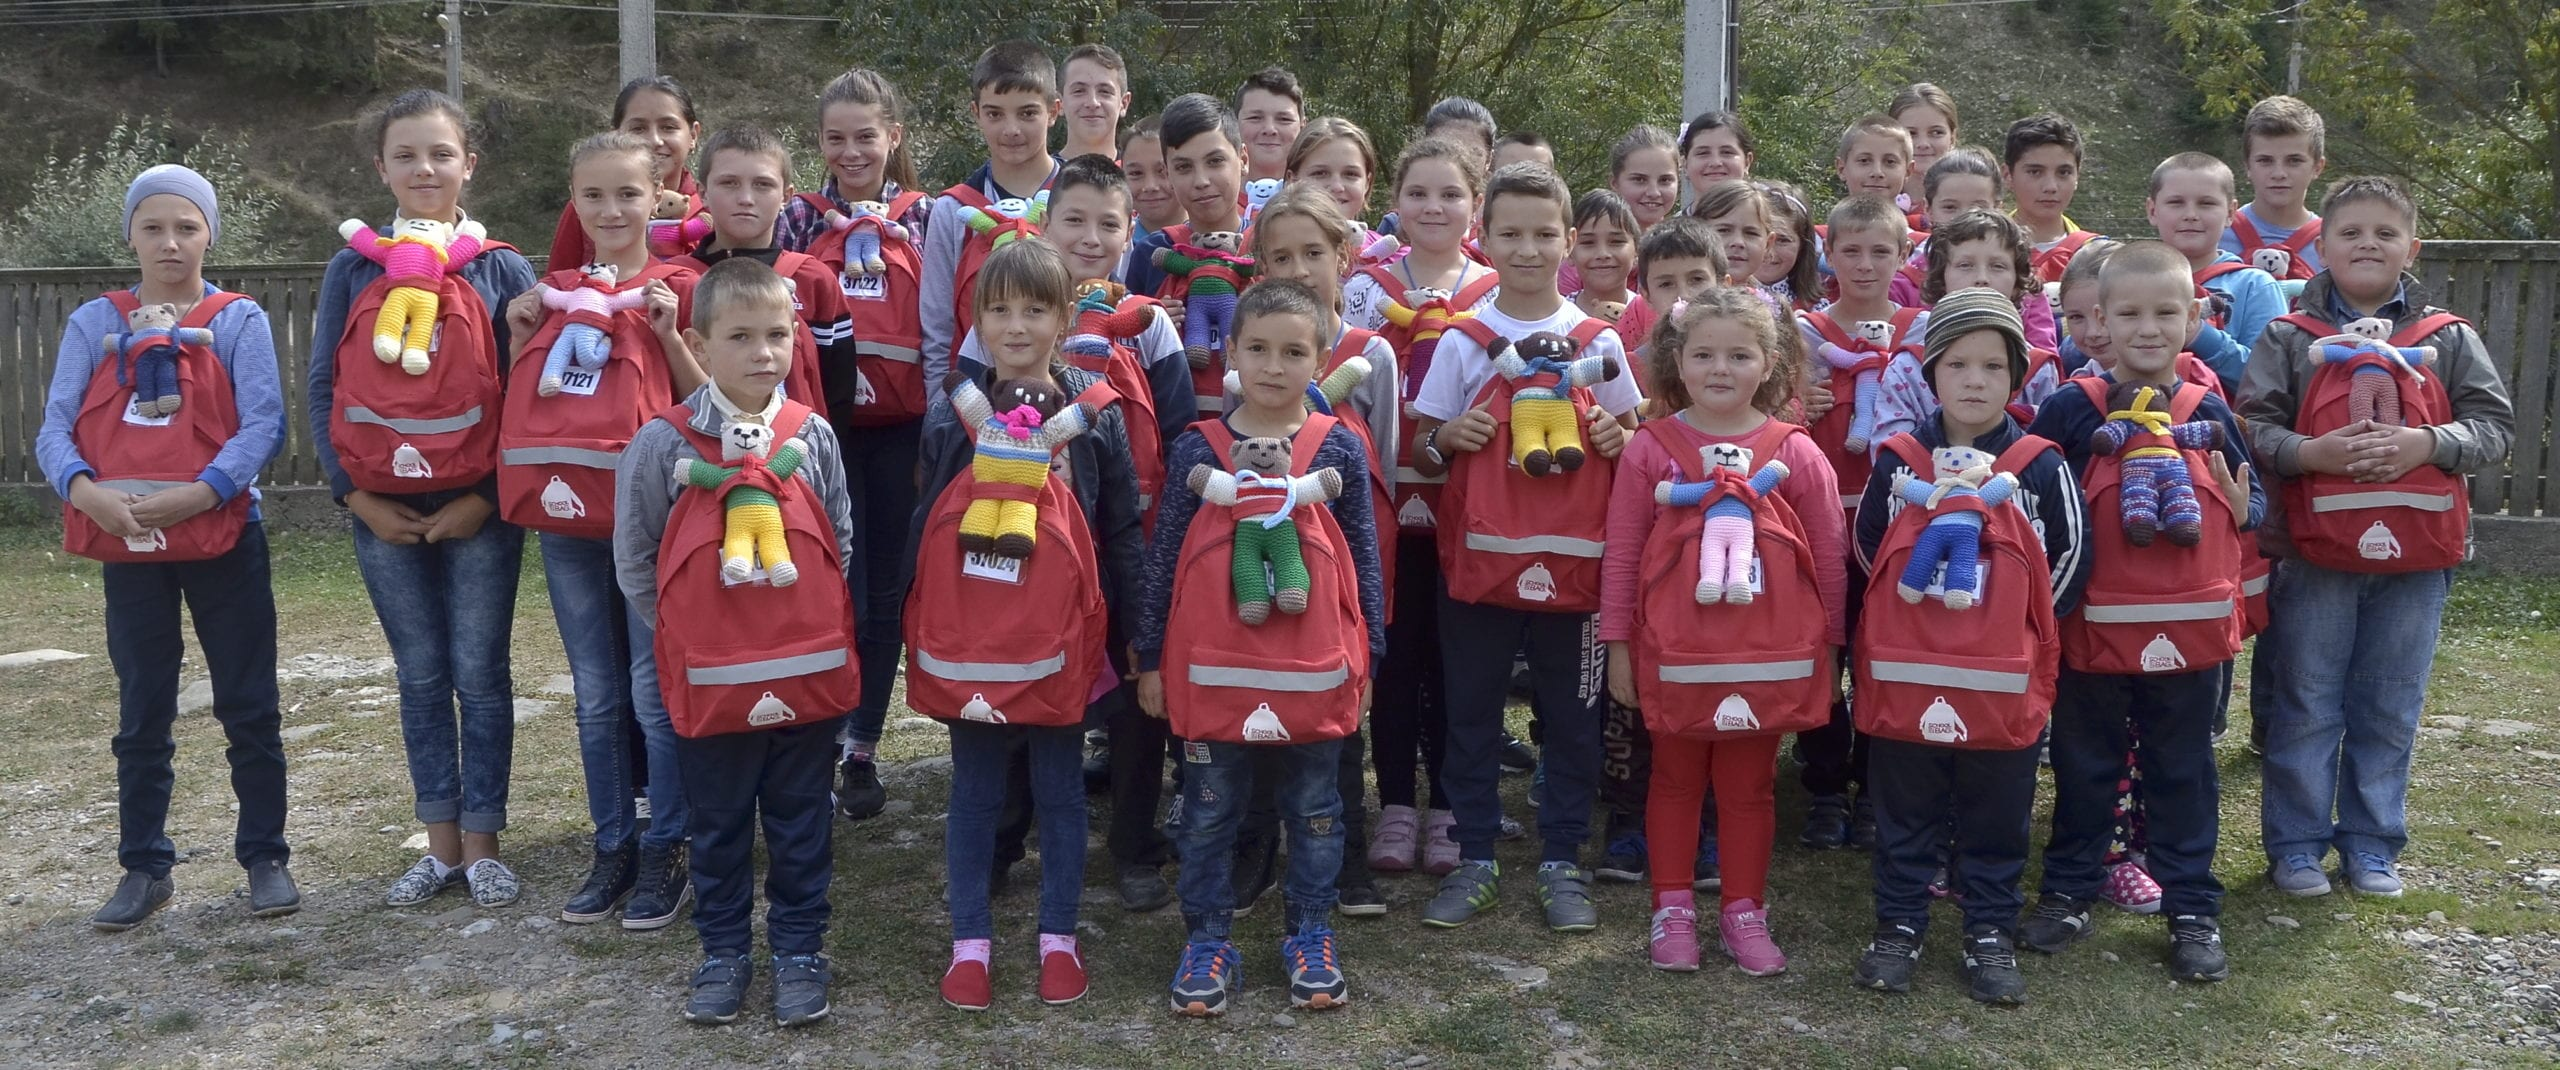 Group of Children with SchoolBags